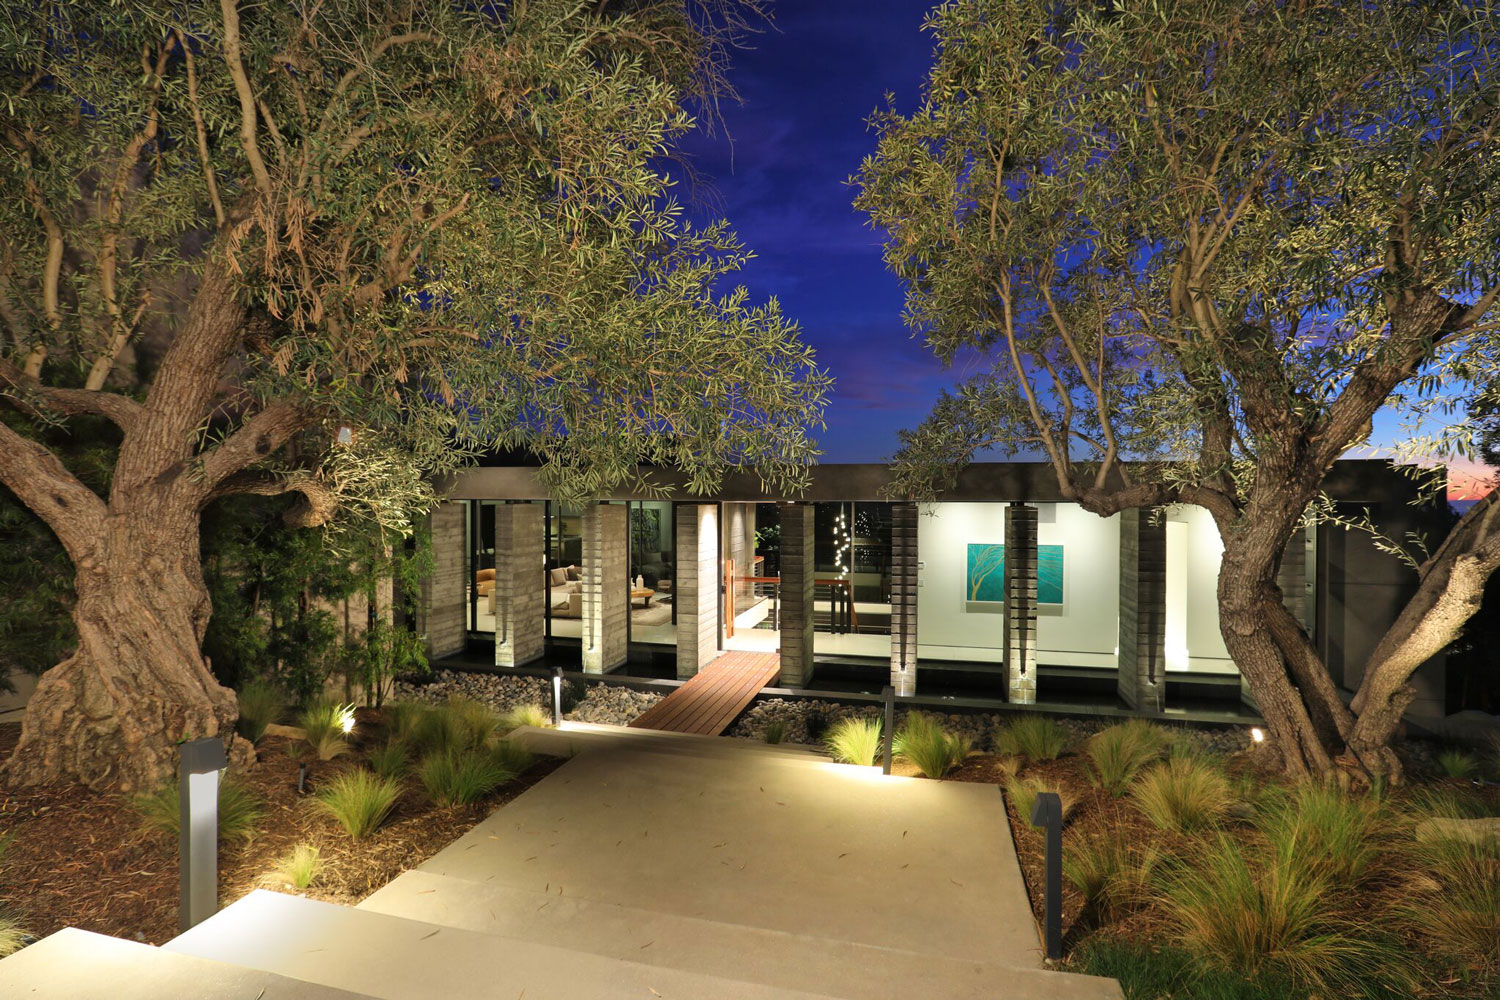 temple-hills-front-house-night.jpg